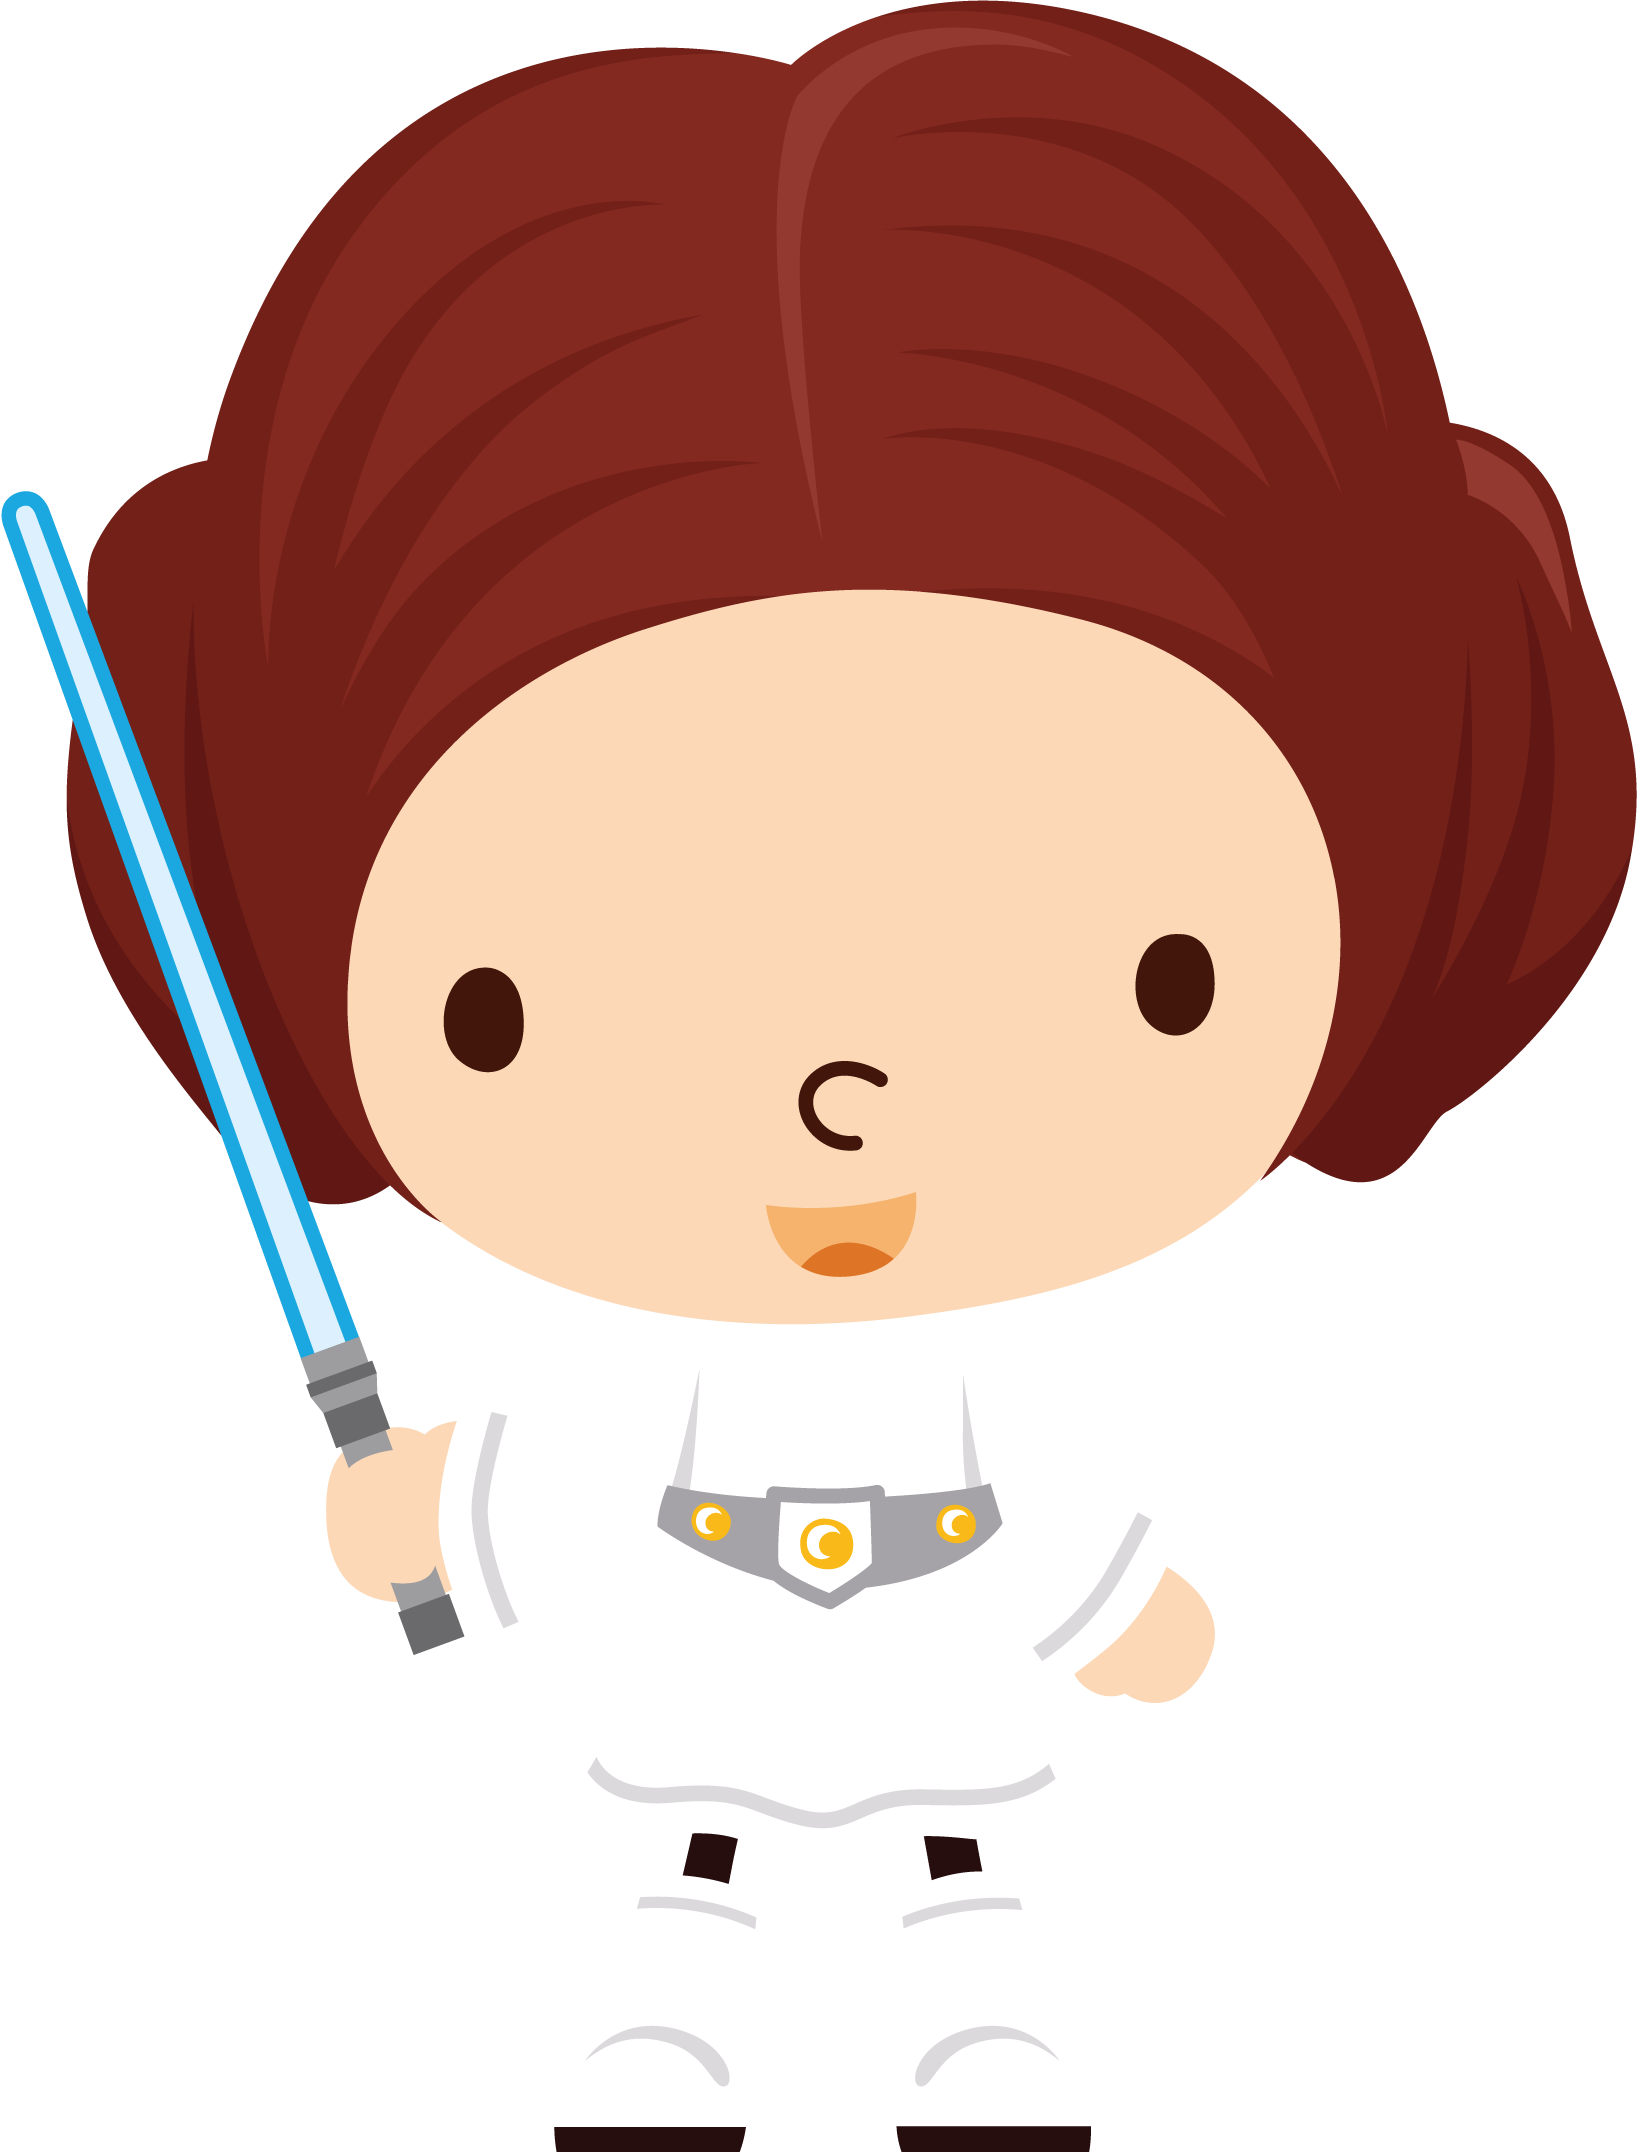 Star wars clipart transparent banner library download orig14.deviantart.net 9790 f 2014 267 0 3 leia_by_chrispix326 ... banner library download